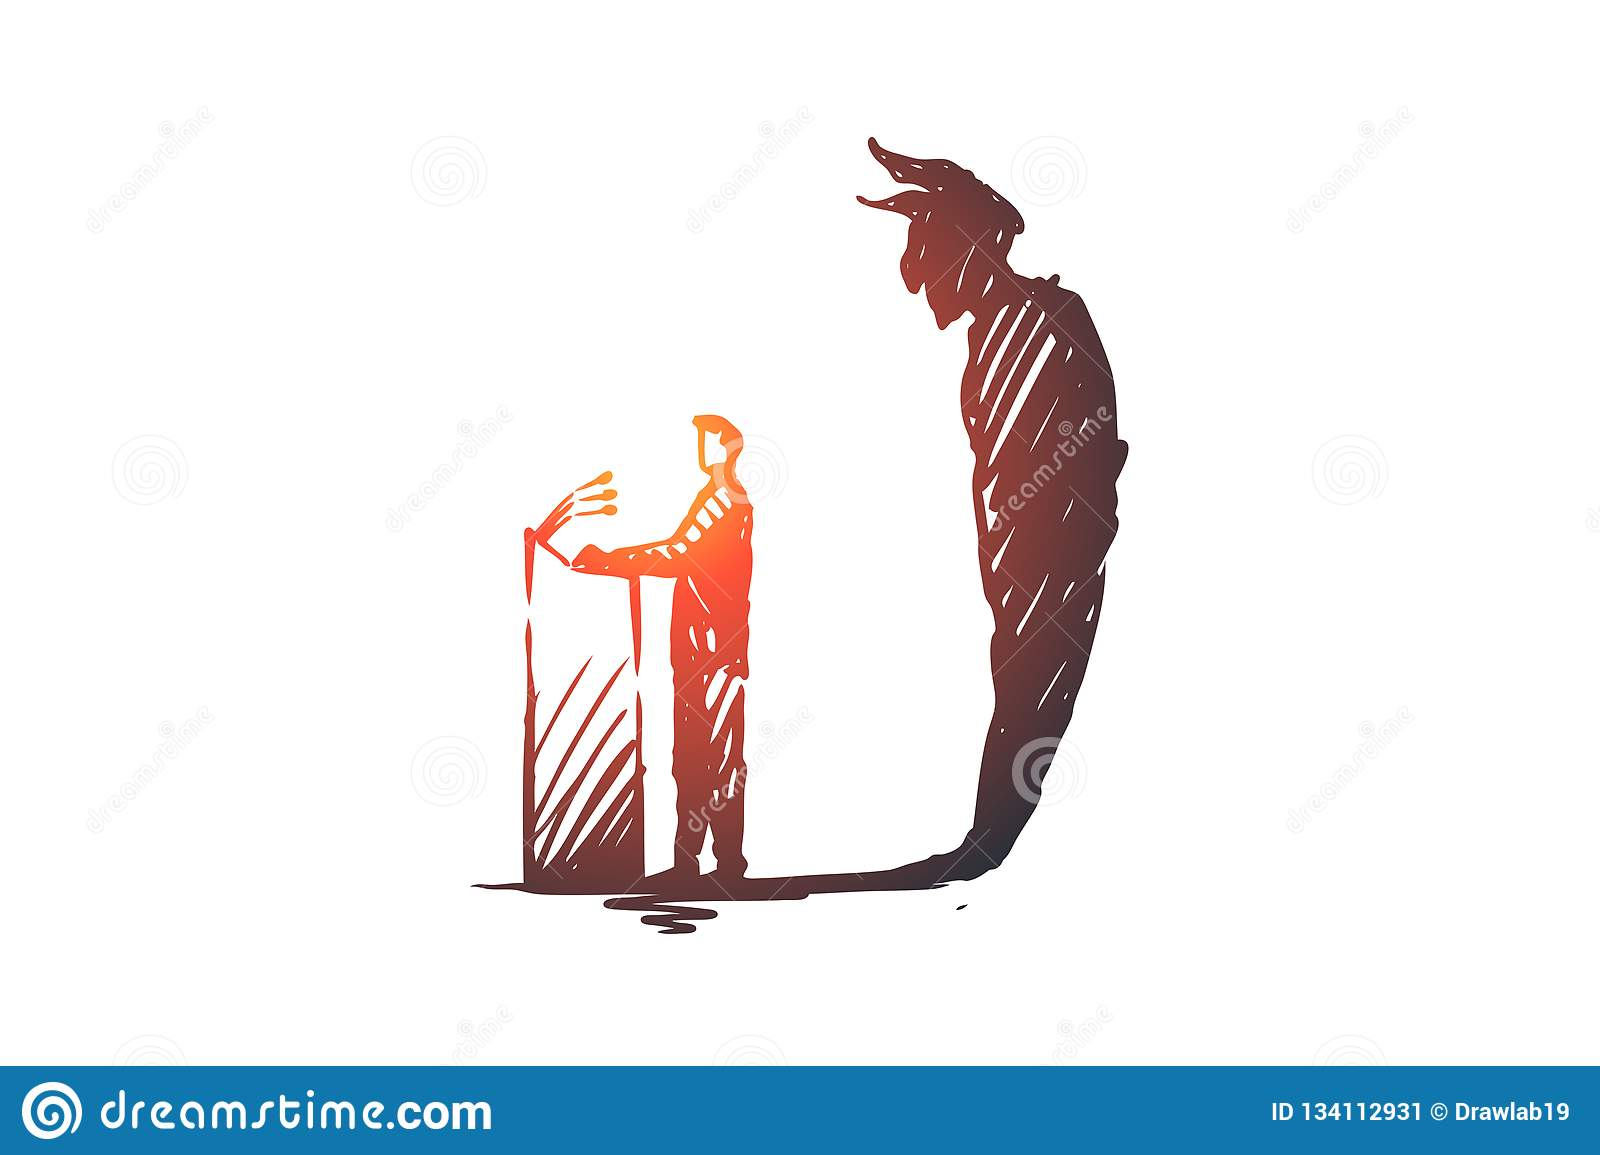 Politician, debate, elections concept. Hand drawn sketch isolated illustration